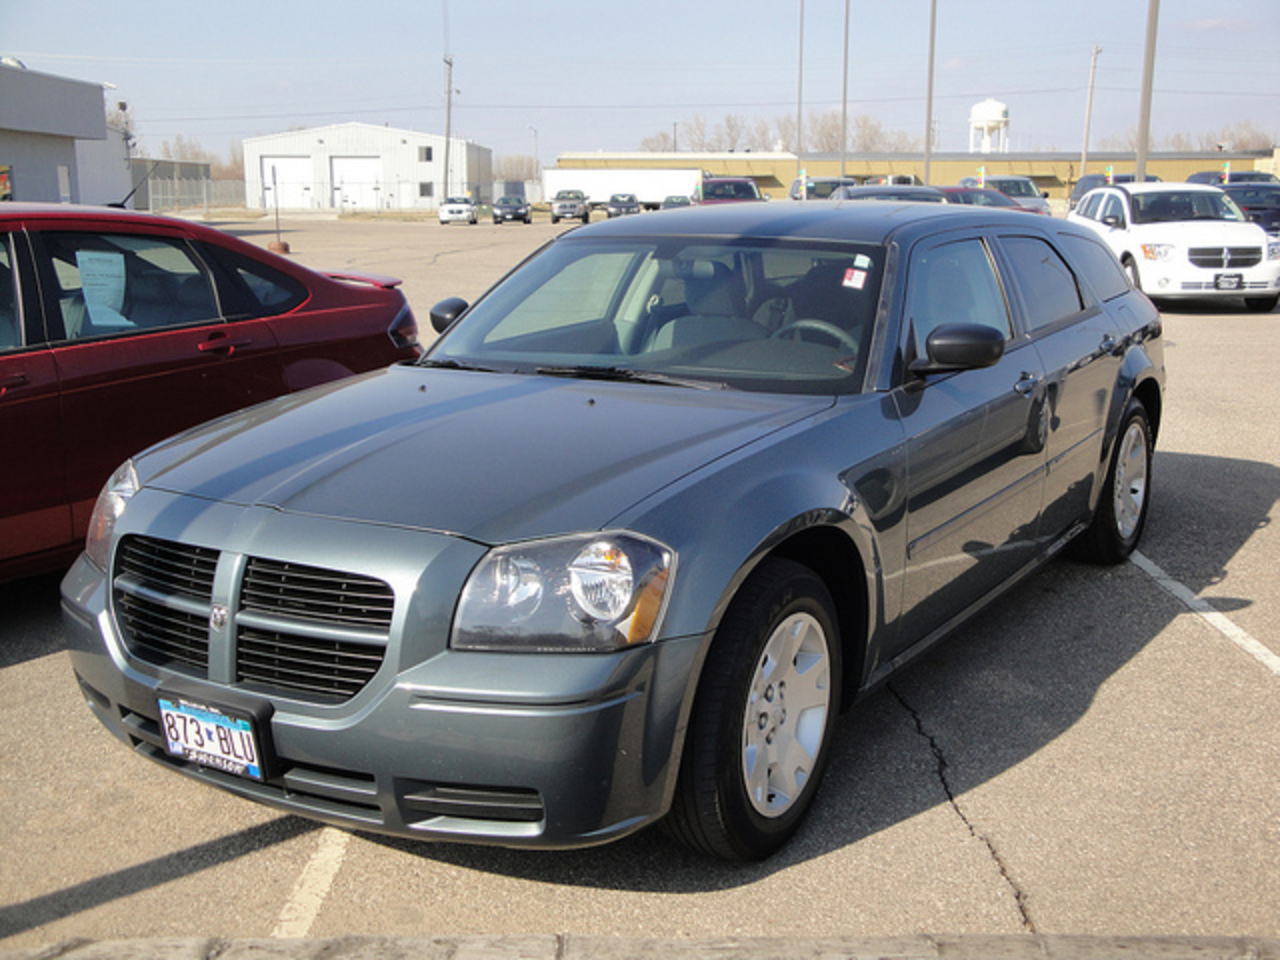 06 Dodge Magnum | Flickr - Photo Sharing!